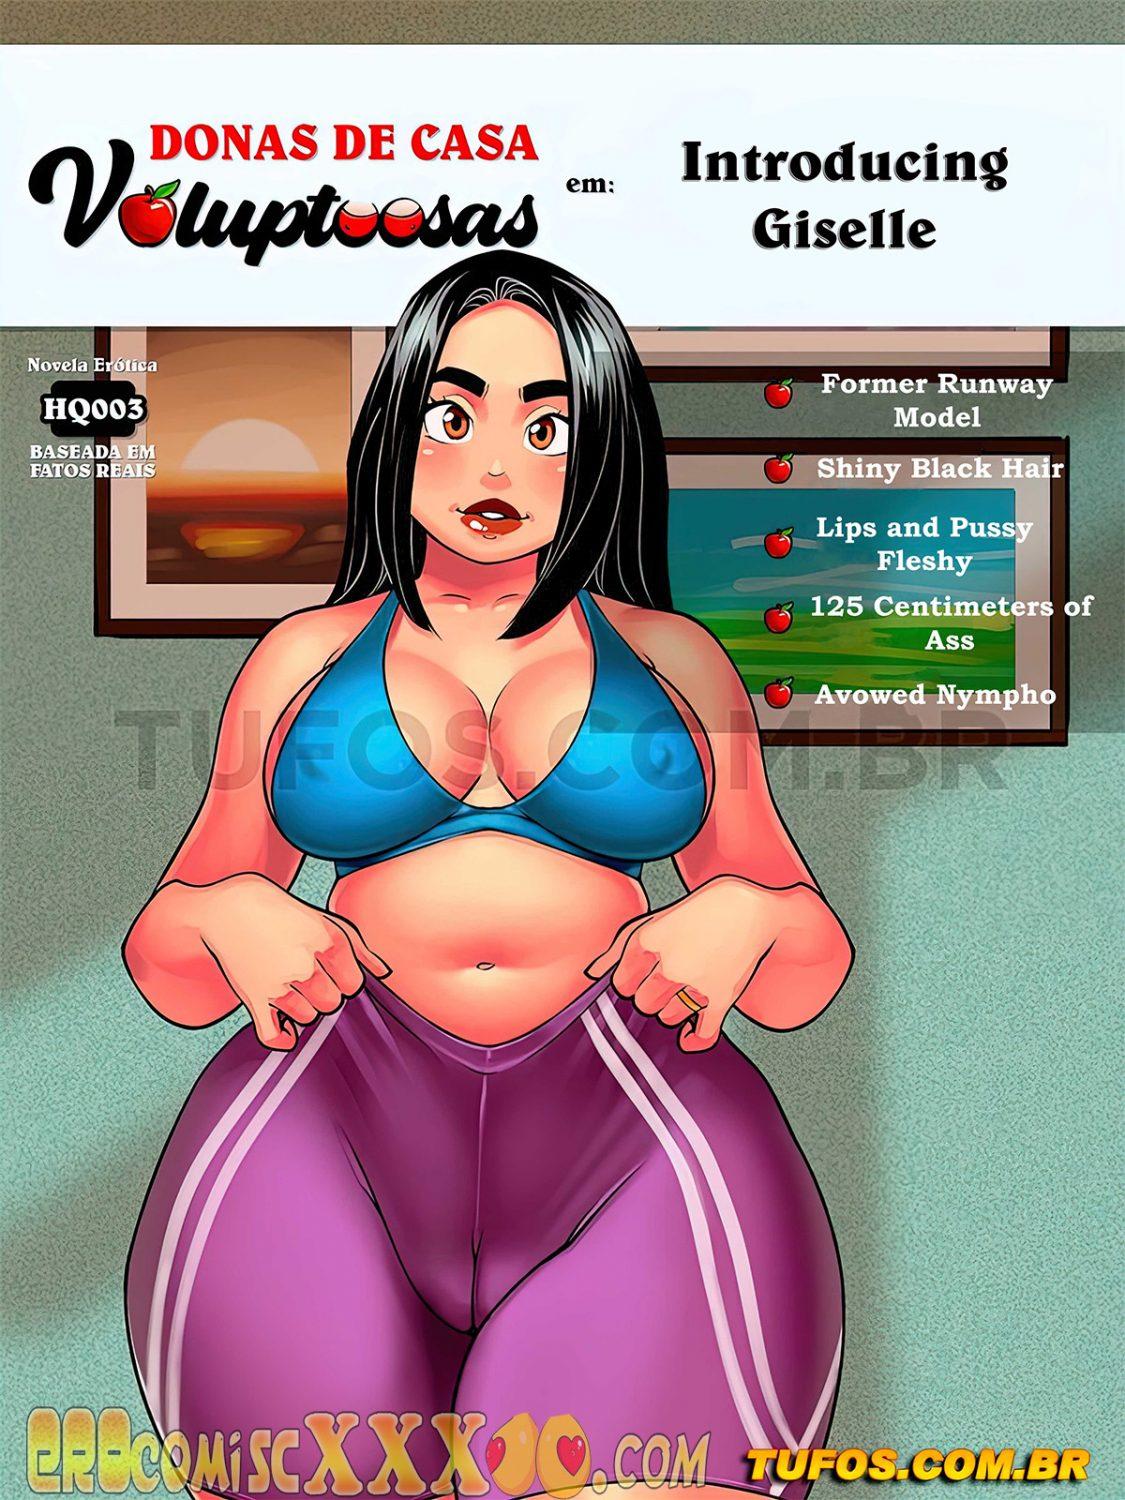 001 29 1125x1500 - Voluptuous Housewives 3 - Introducing Giselle.